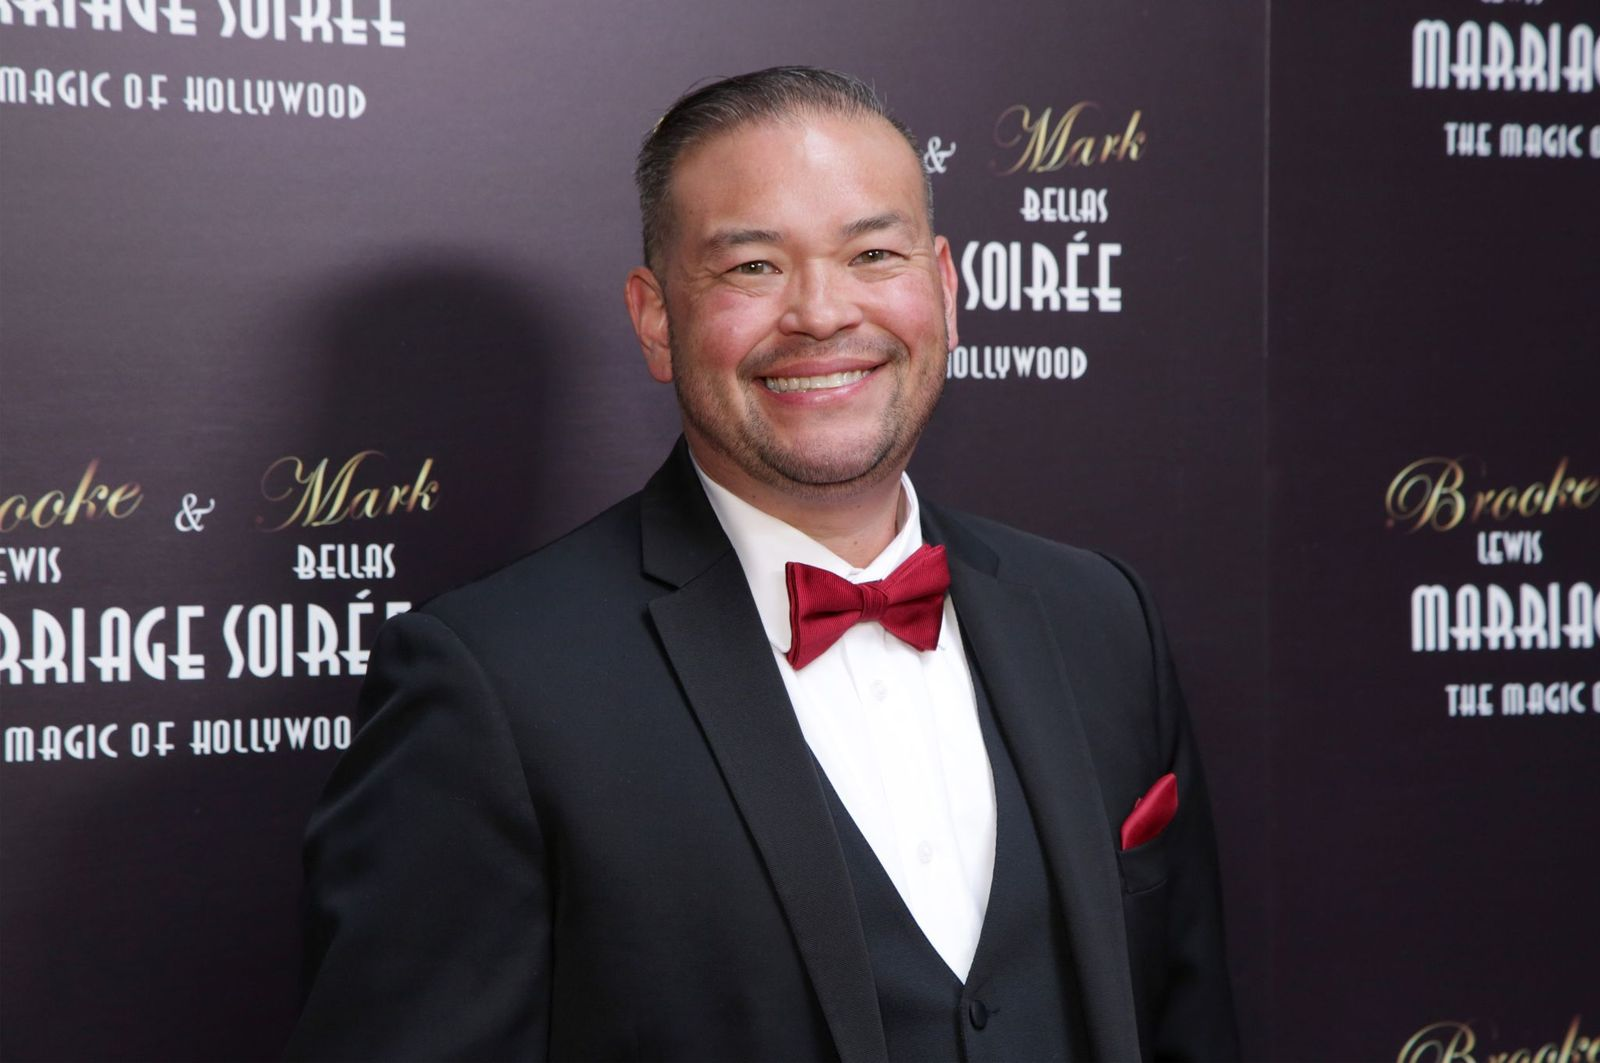 """Jon Gosselin at Brooke & Mark's Marriage Soiree """"The Magic Of Hollywood"""" at the Houdini Estate on June 01, 2019   Photo: Getty Images"""